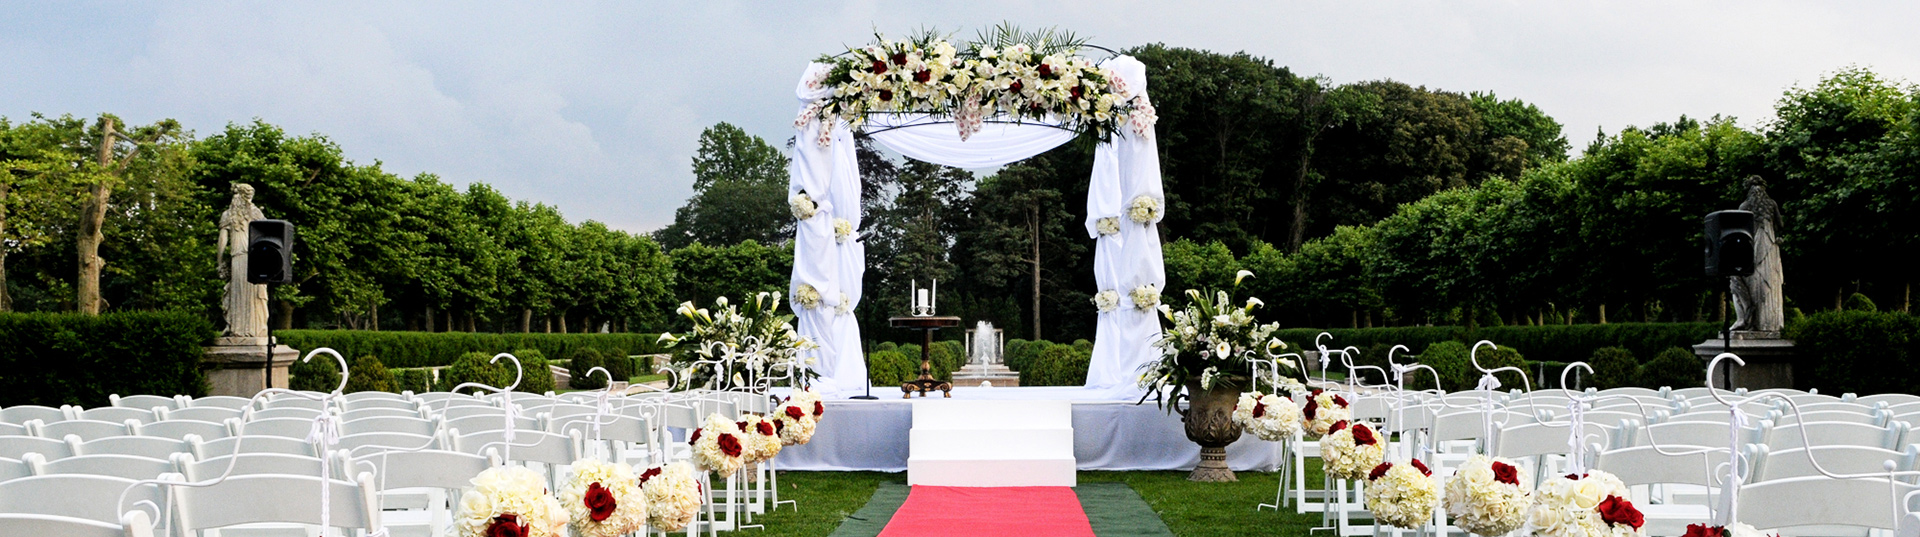 Wedding Planners in New York